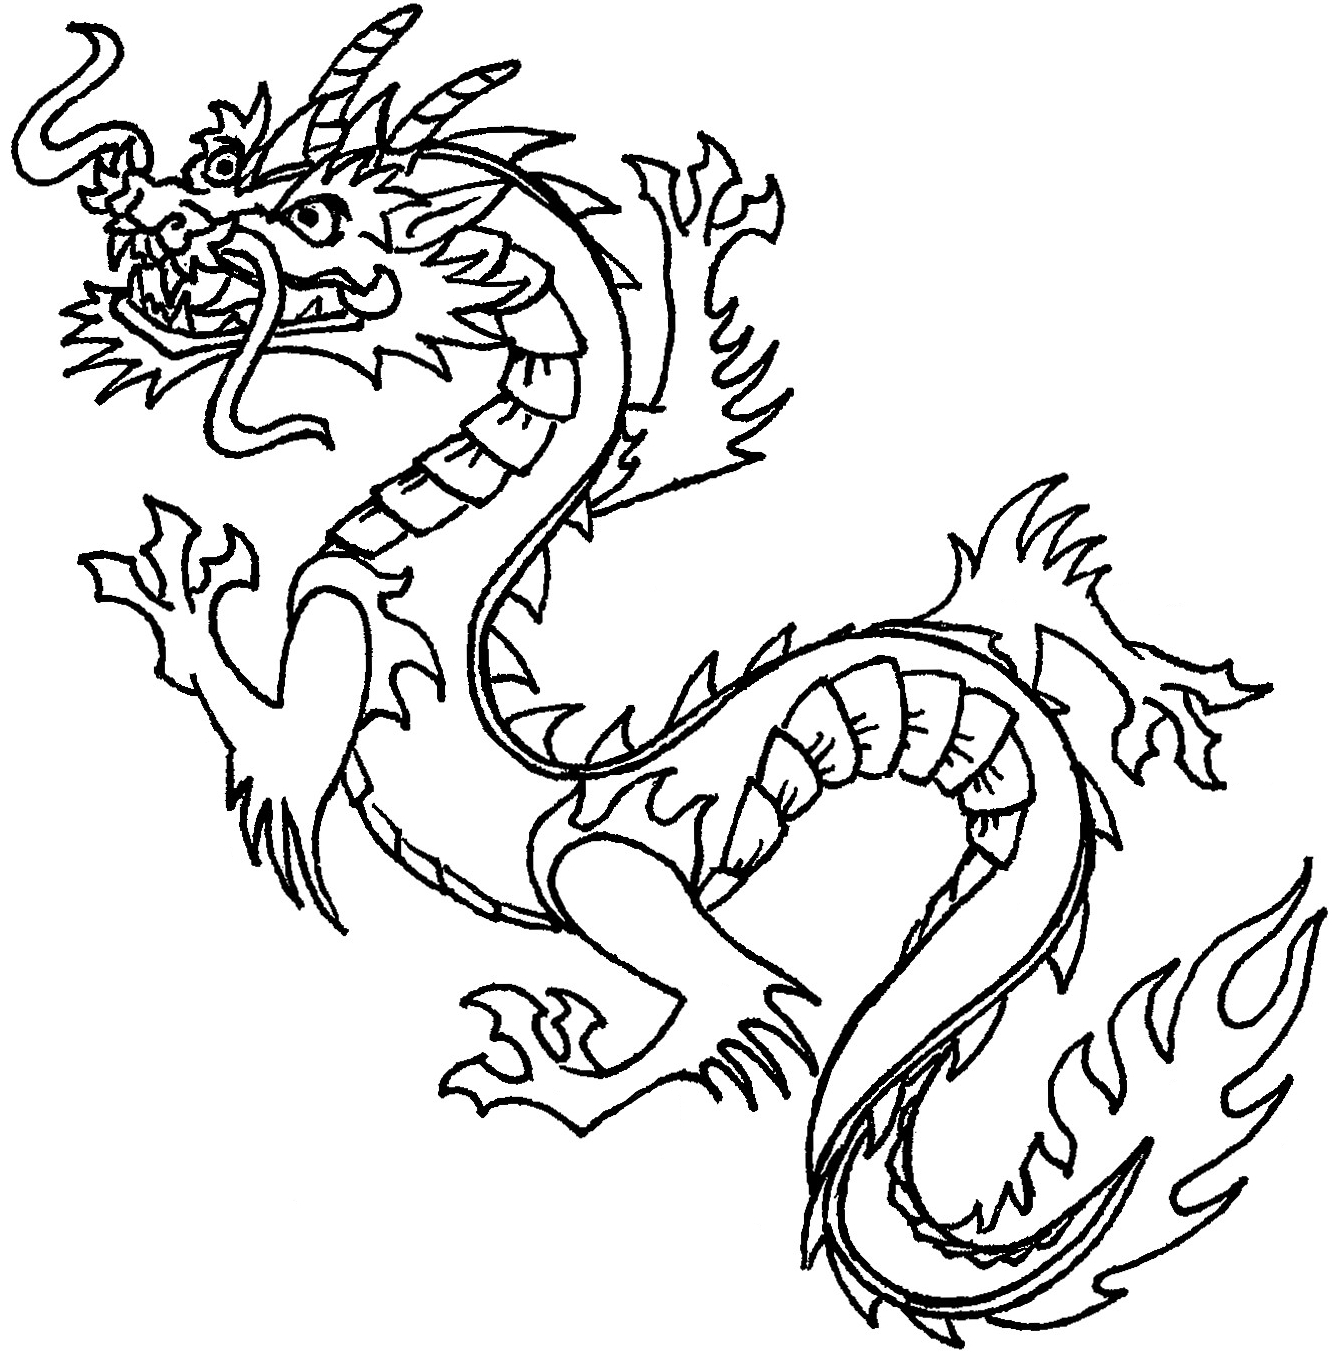 ... Chinese Dragon Clipart Black And Whi-... Chinese dragon clipart black and white cute ...-2